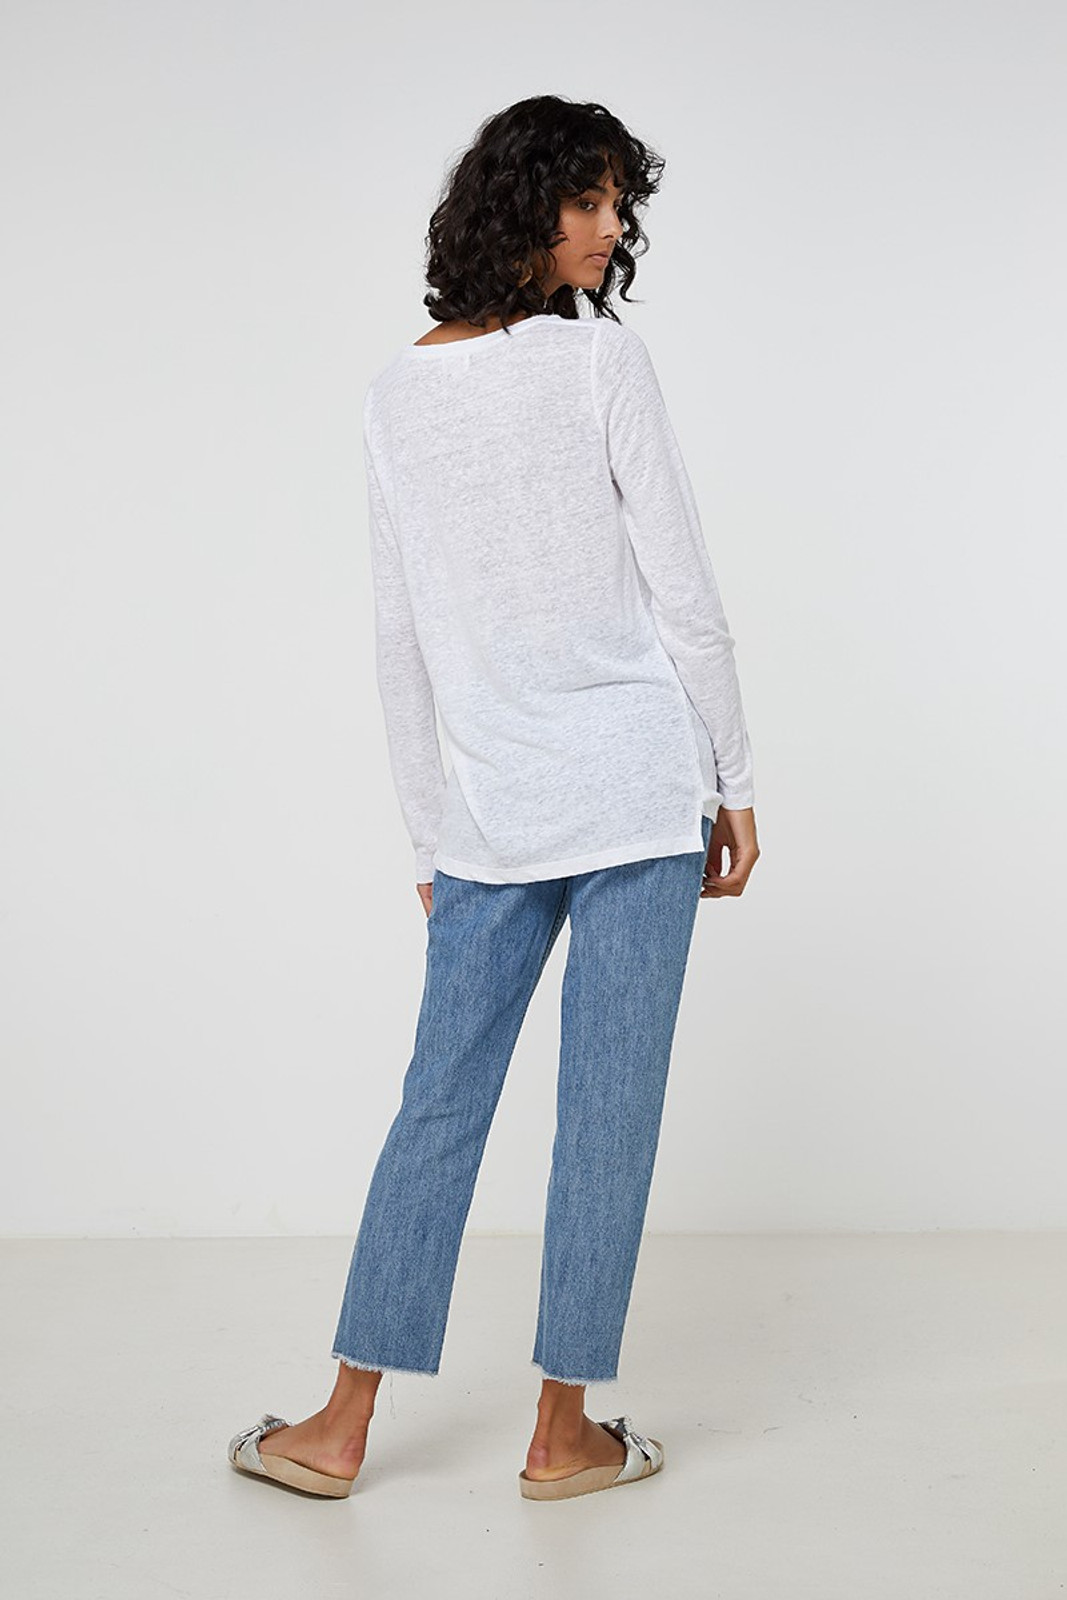 Elka Collective EC Linen L/Slv Tee White  2